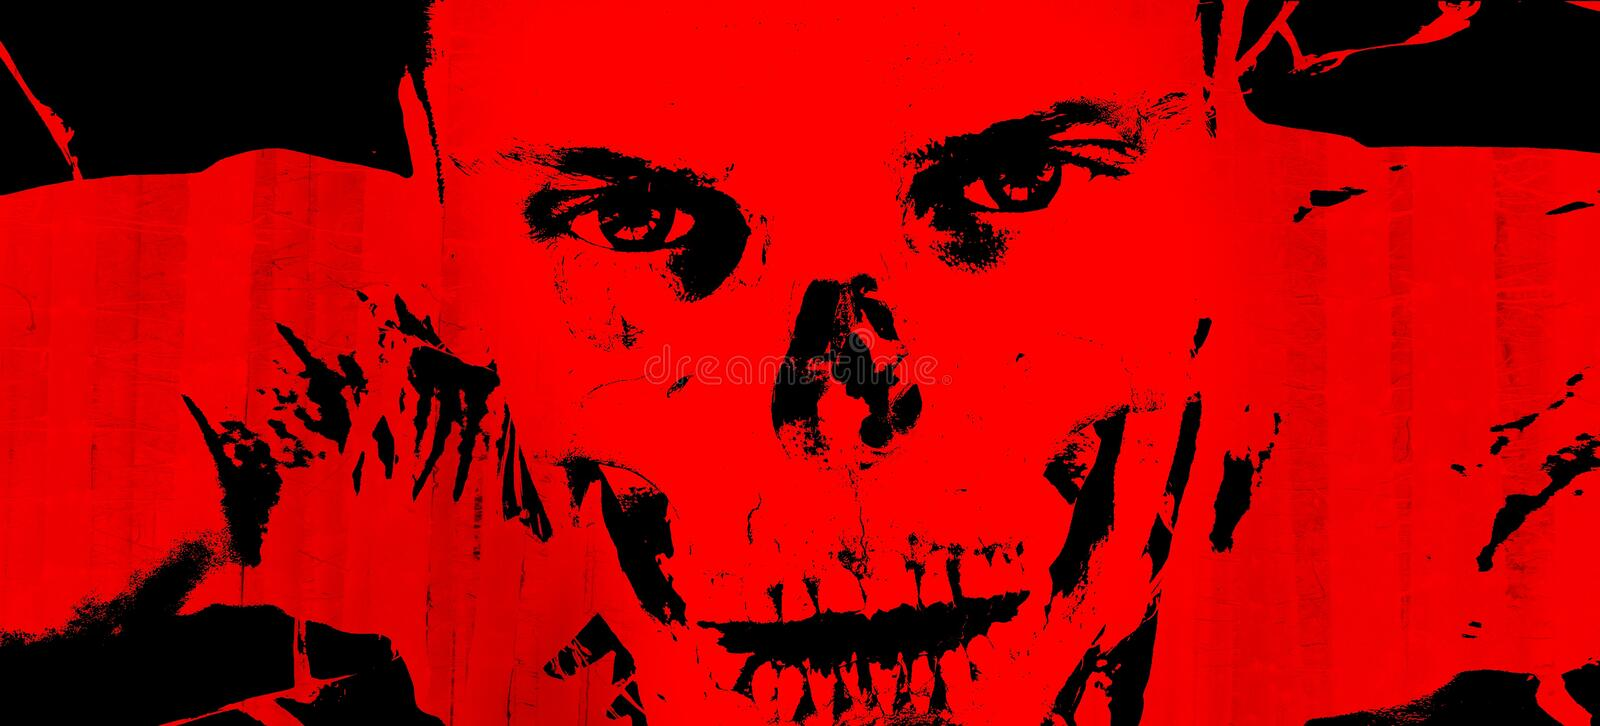 Red, Black, Art, Illustration royalty free stock photos